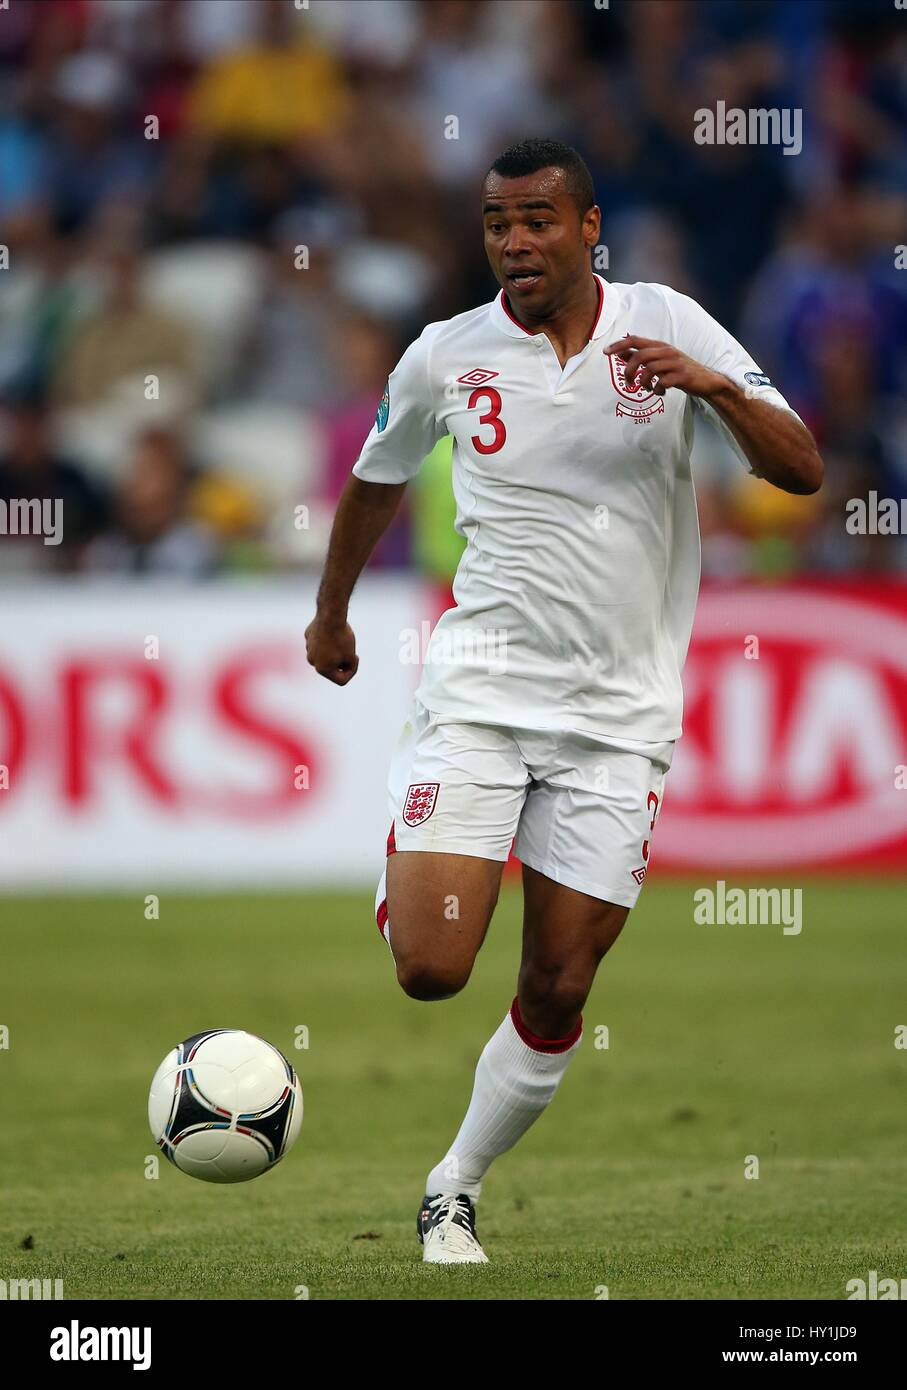 ASHLEY COLE ENGLAND CHELSEA FC ENGLAND & CHELSEA FC DONBASS ARENA